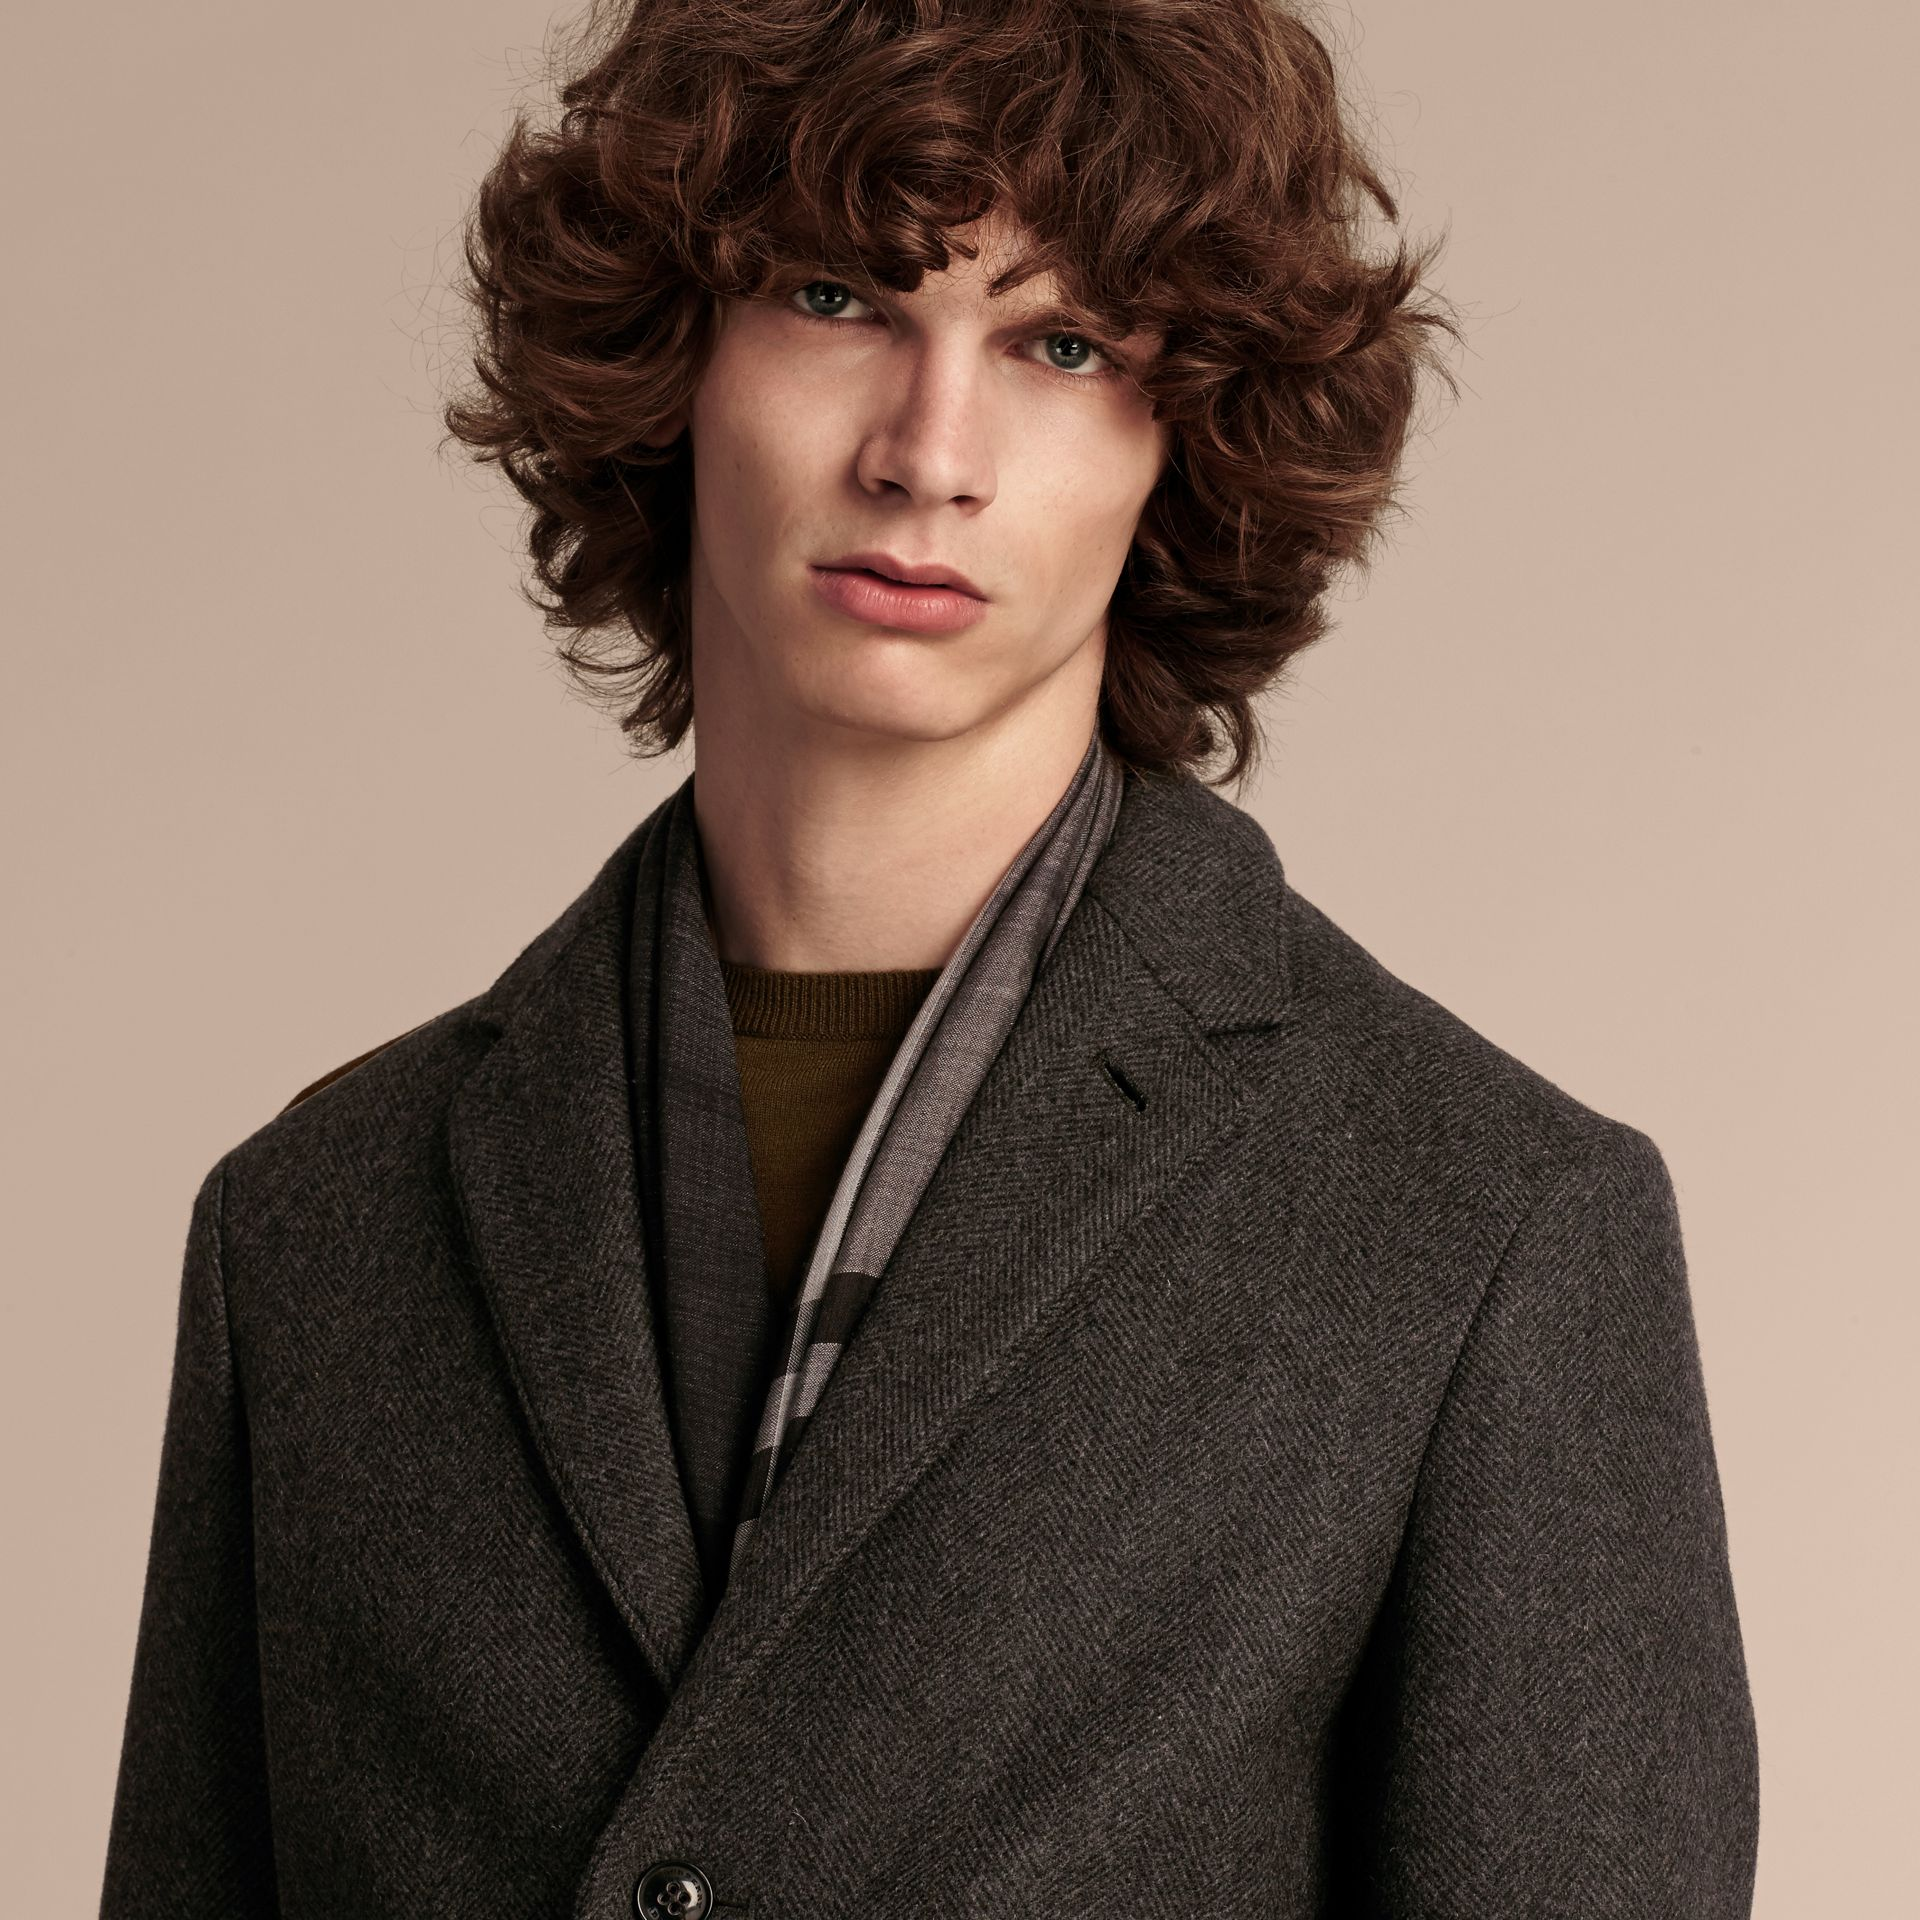 Charcoal melange Single-breasted Wool Blend Tailored Coat - gallery image 5